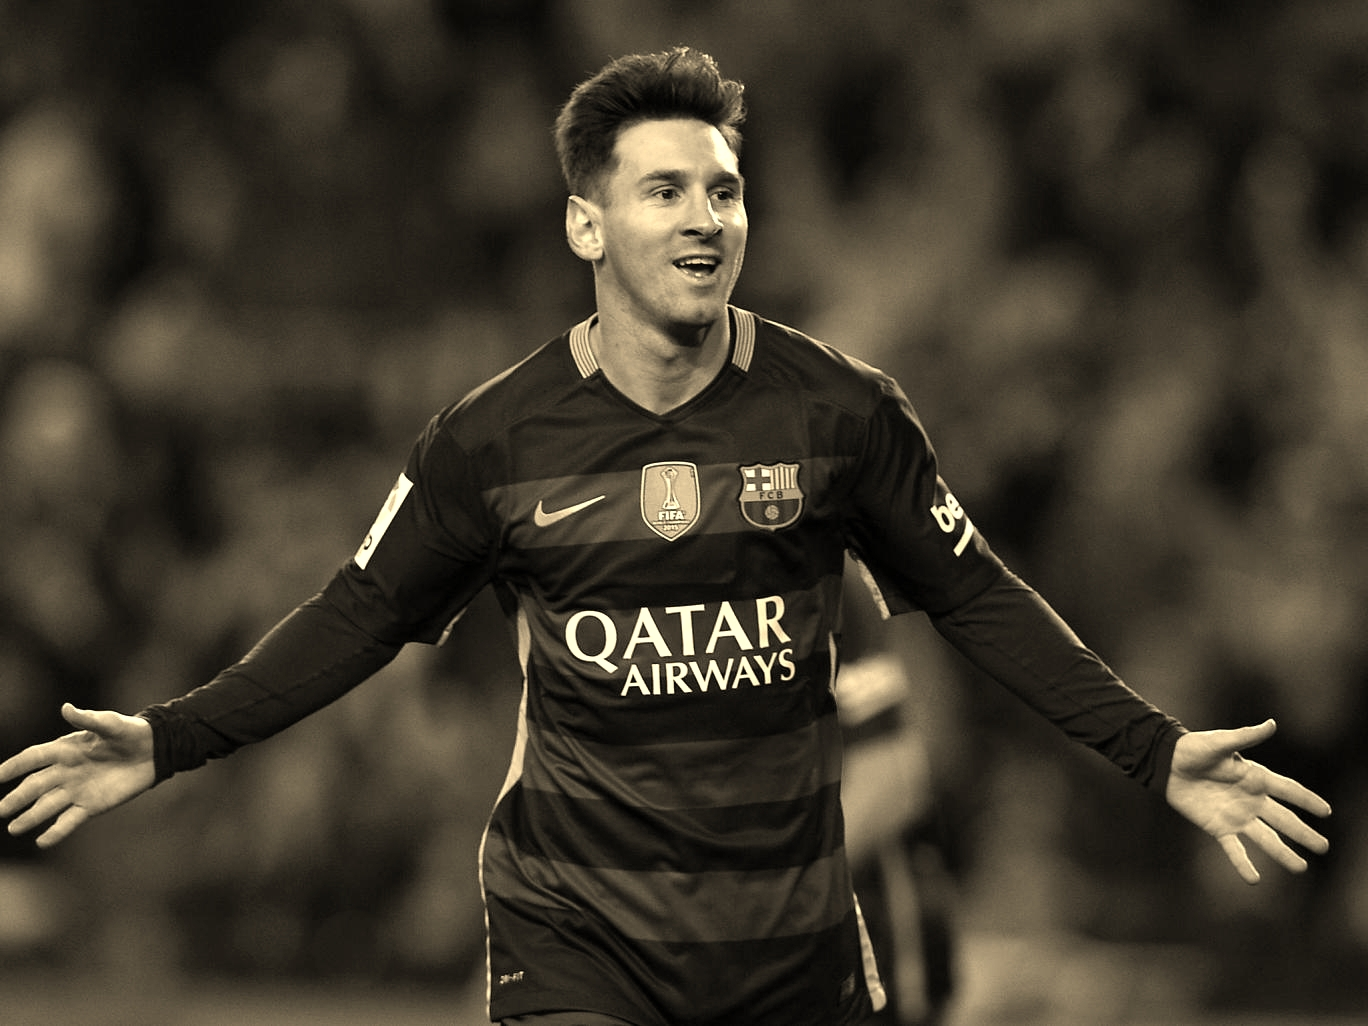 """Messi himself fondly recollects his time at the Rosario based club; """" as a little boy in Argentina, I played futsal on the streets and for my club…it really helped me become who I am today""""."""